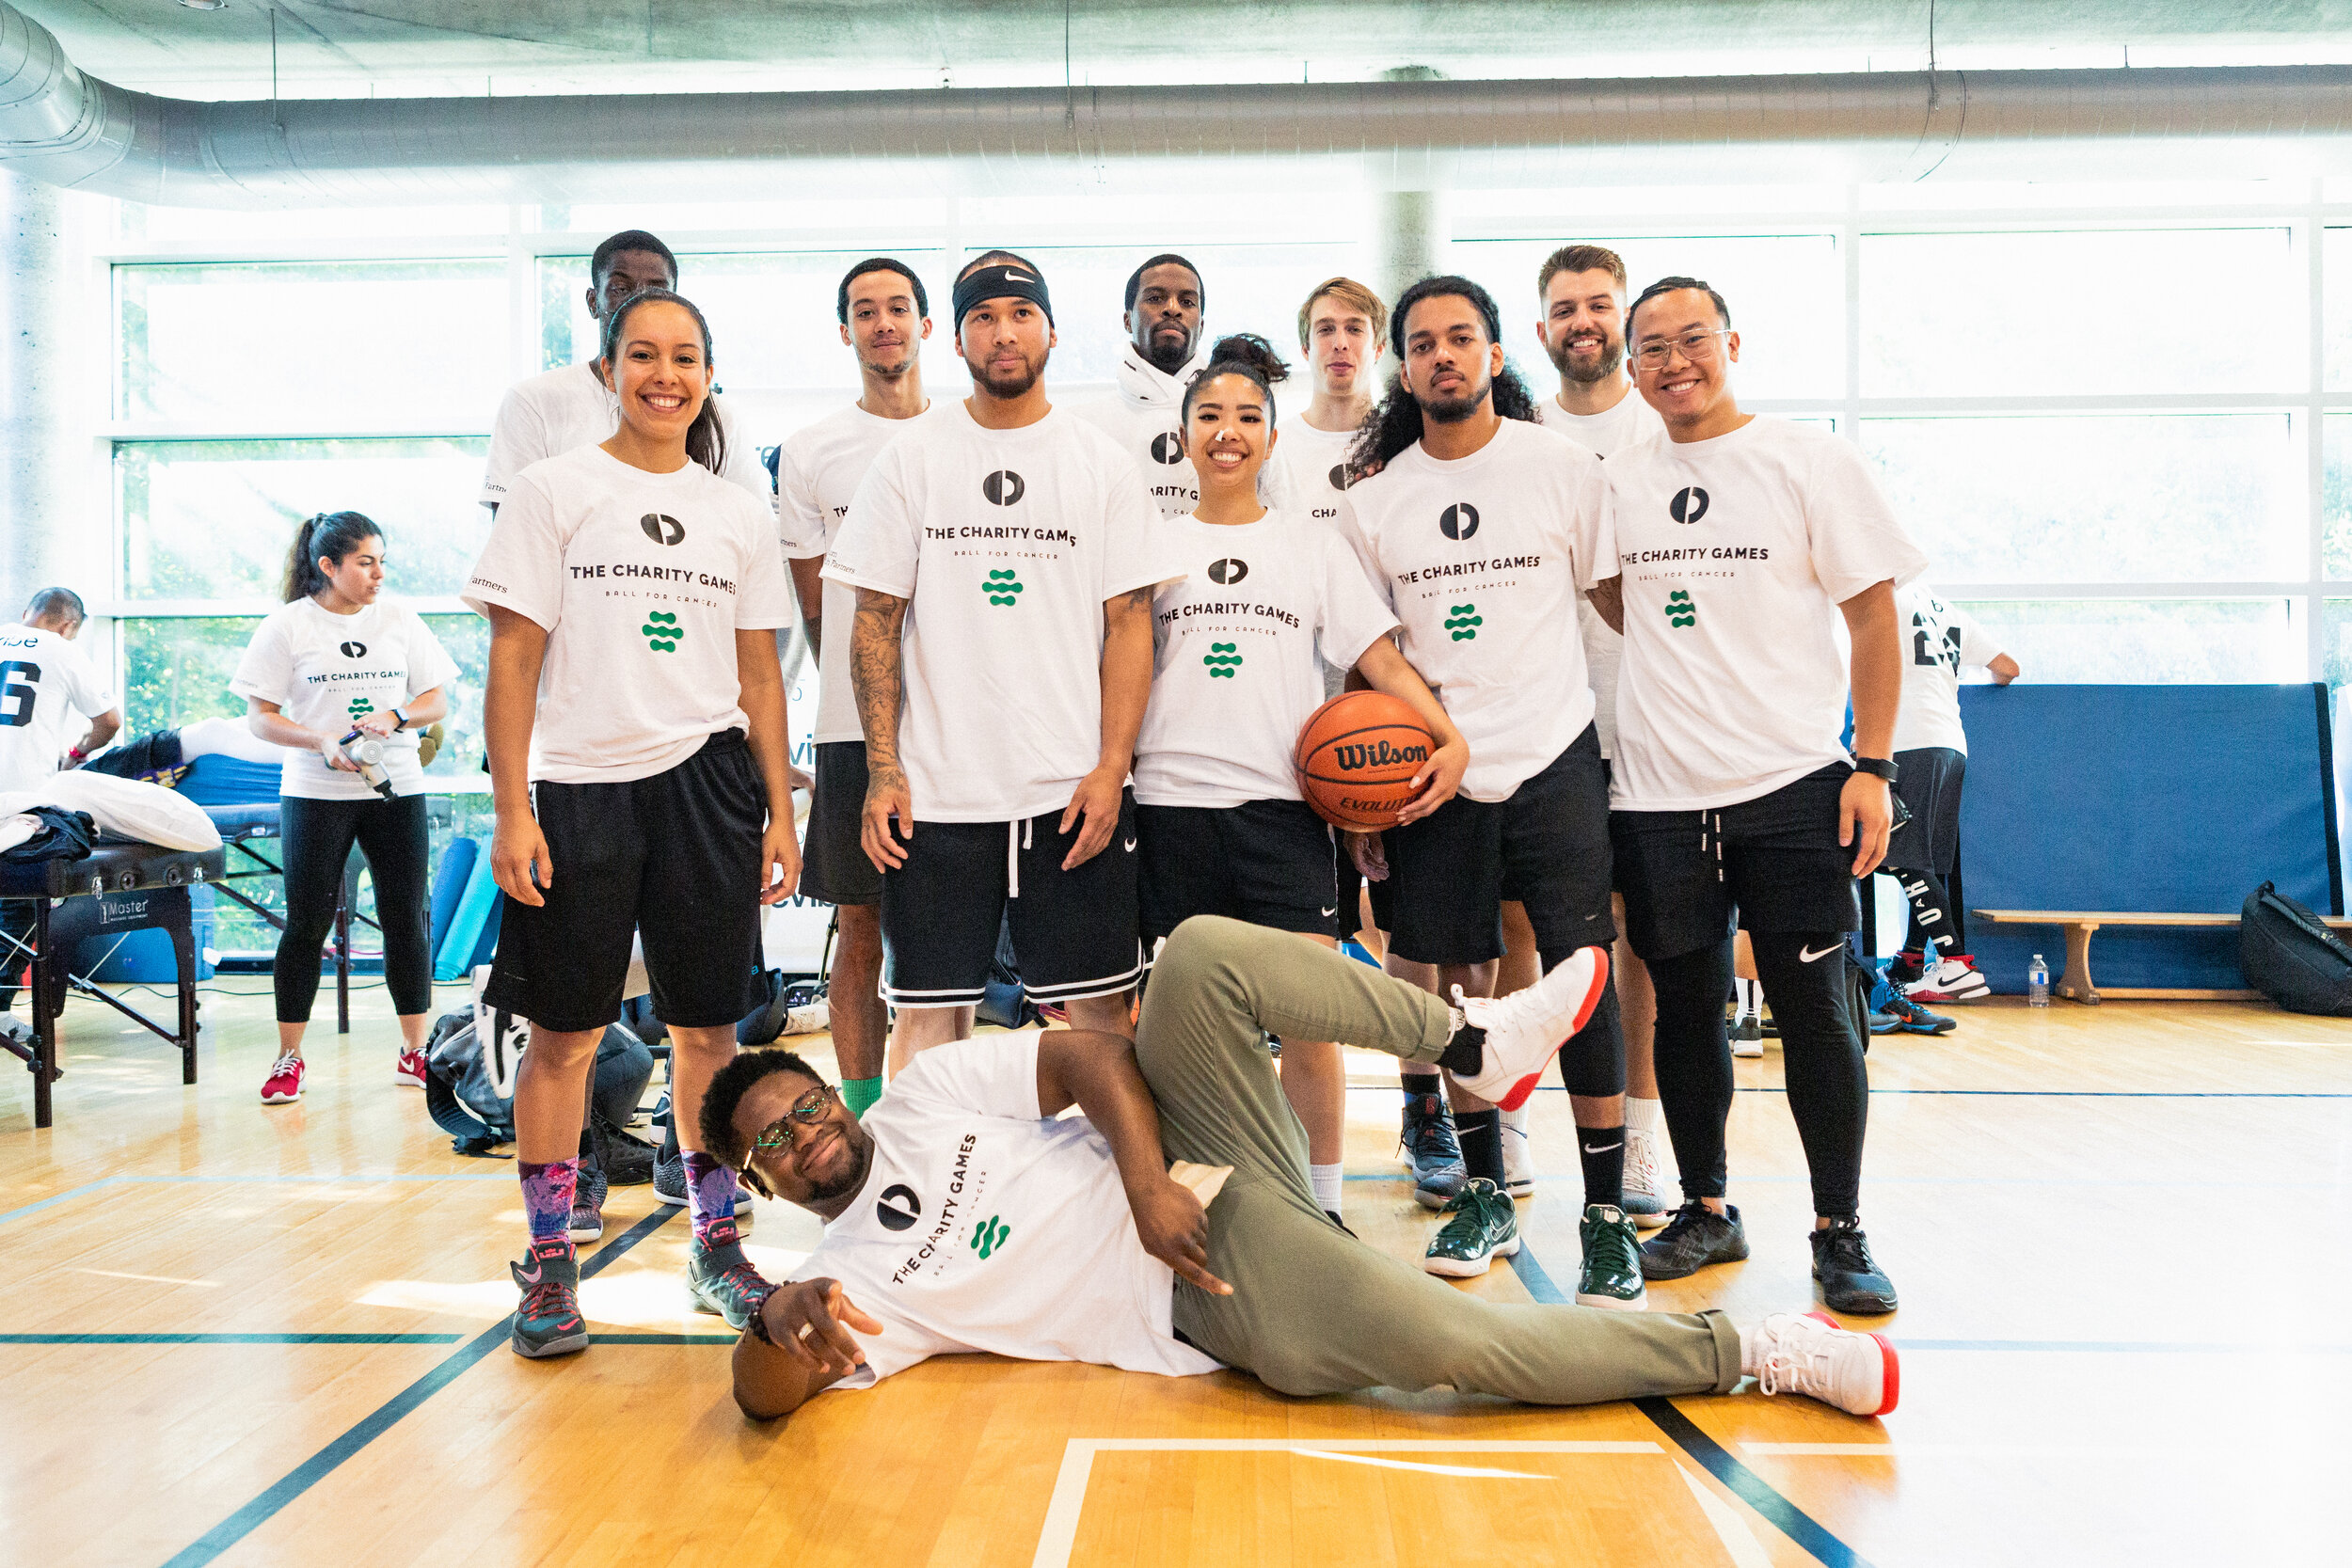 TEAM REVIBE - Revibe takes the court at Charity Games